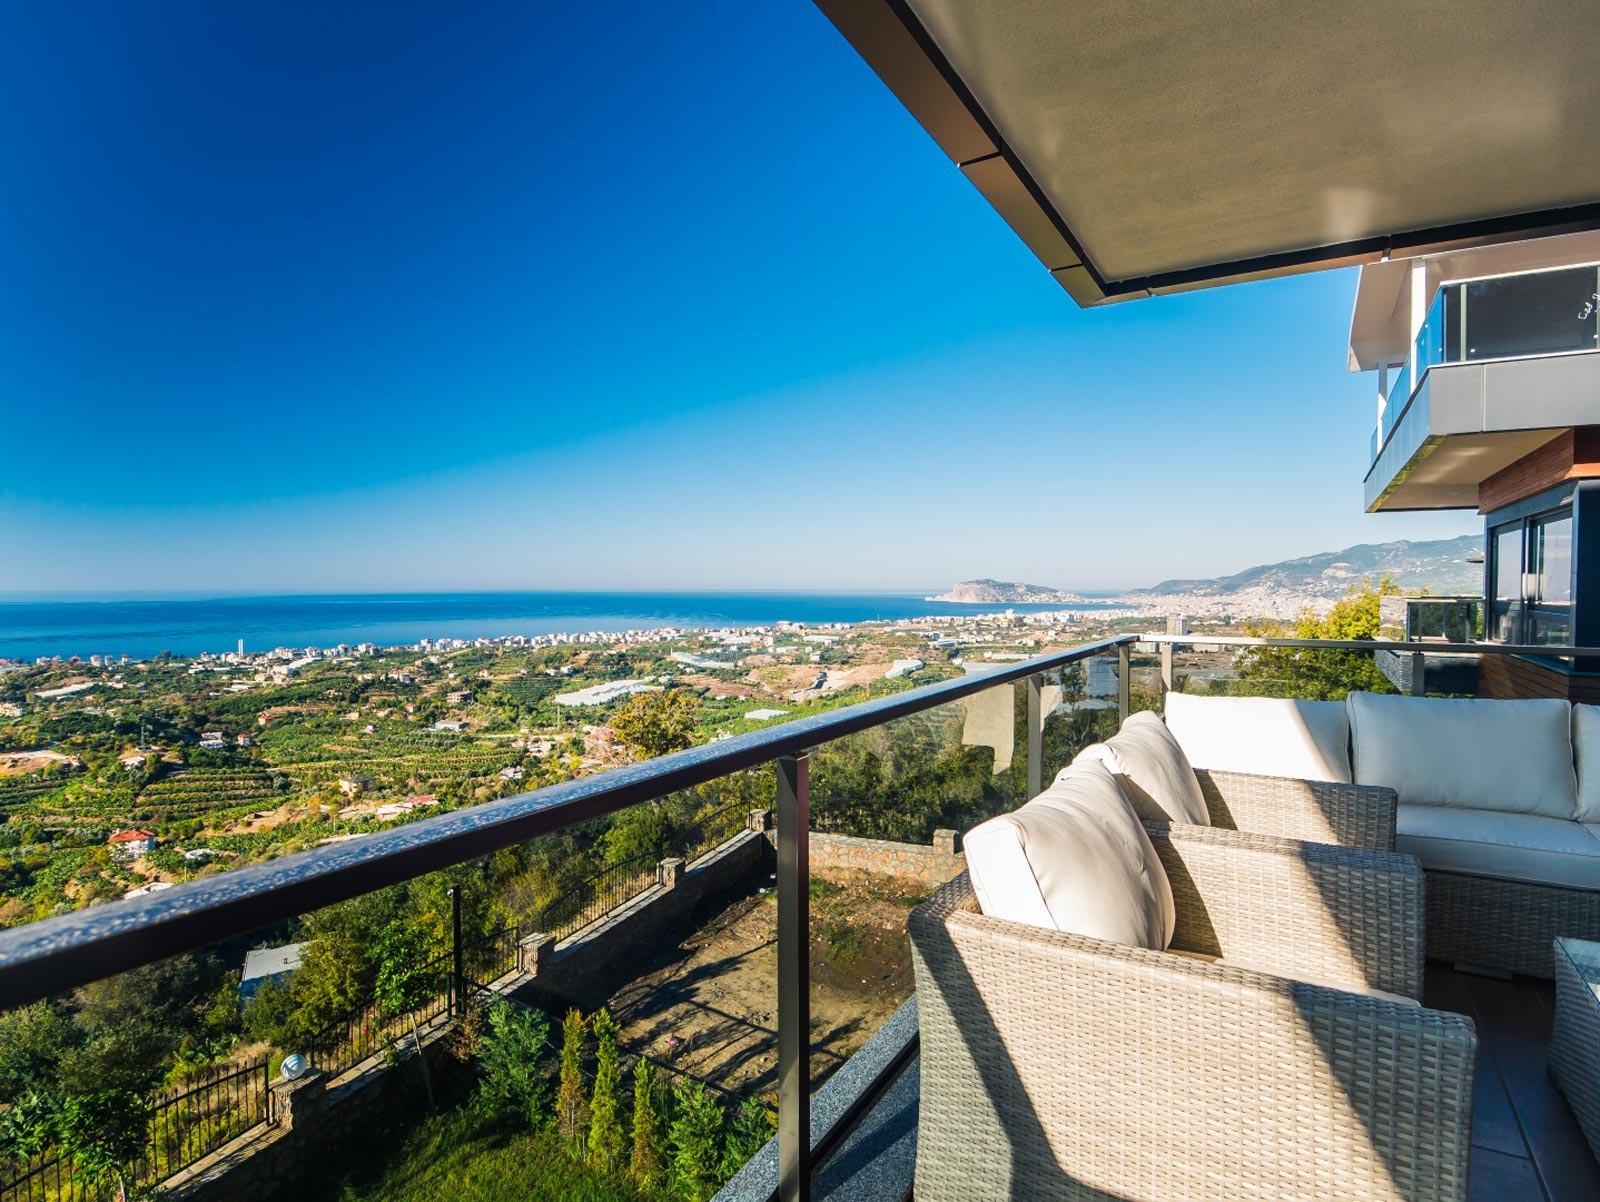 Luxury Villa With Breathtaking Sea, Mountains And Alanya Castle View